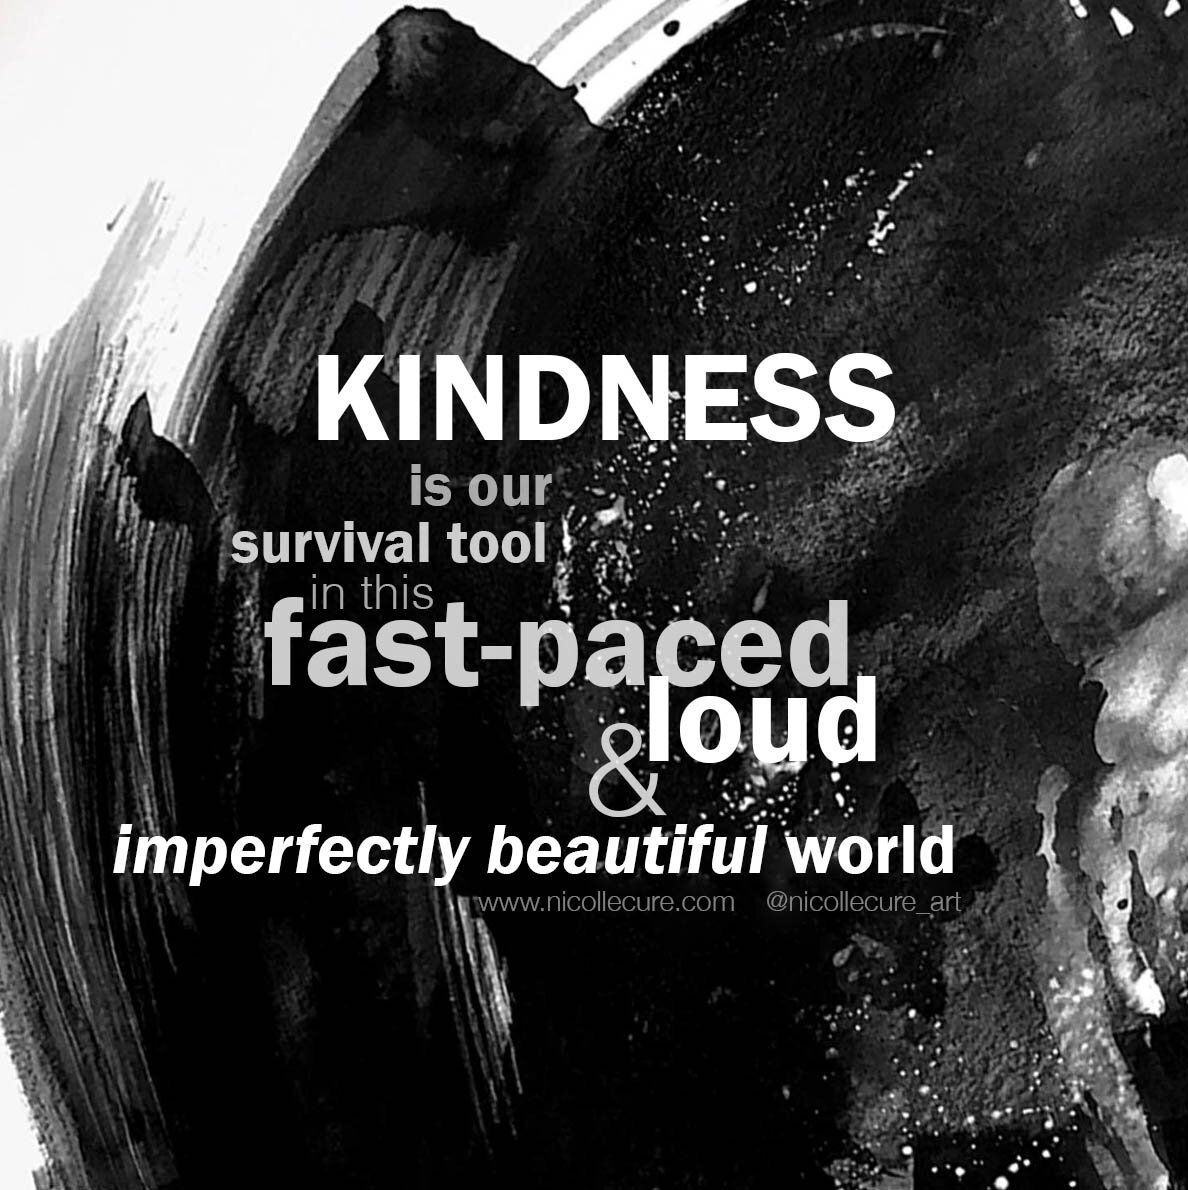 Kindness goes a long way and it is our survival tool in this fast-paced, loud and imperfectly beautiful world.